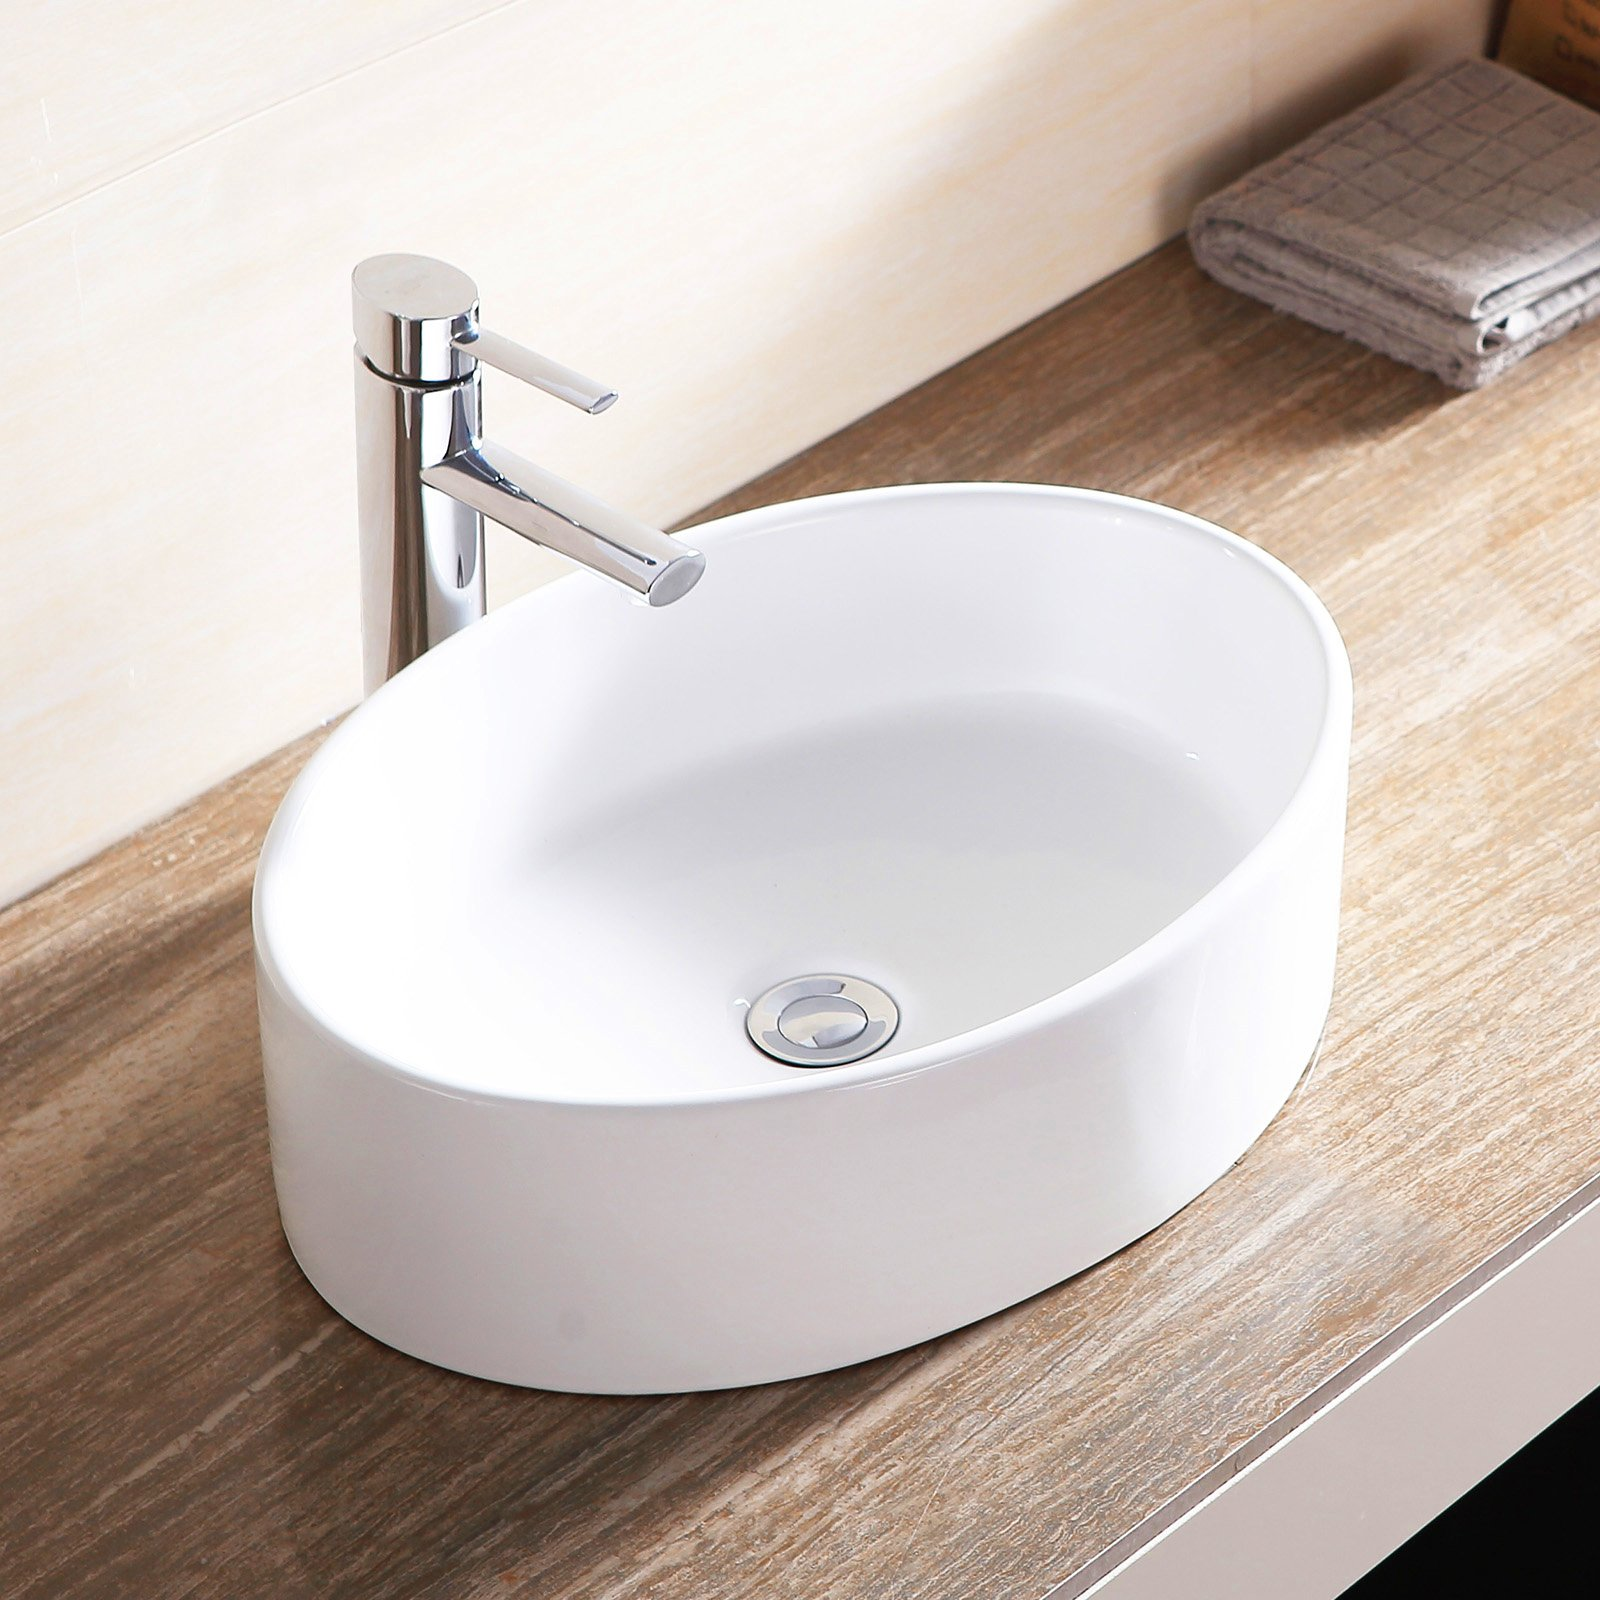 Mecor Oval White Porcelain Bathroom Ceramic Vessel Sink Bowl Basin w/Pop Up Drain by mecor